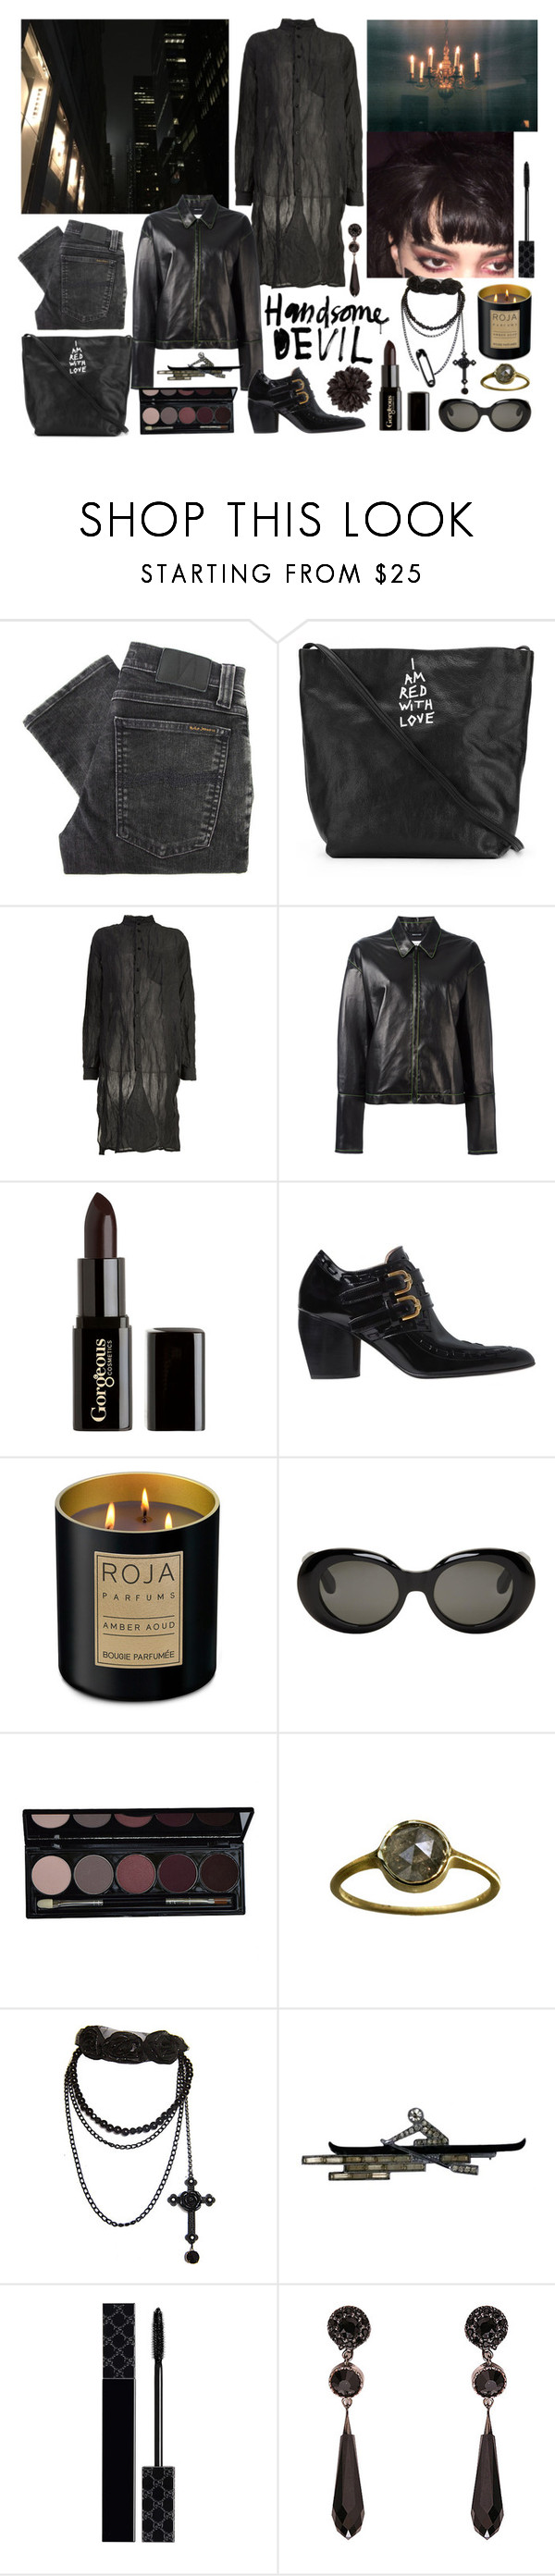 """""""somebody mixed my medicine again"""" by nothingisnormal ❤ liked on Polyvore featuring Nudie Jeans Co., Ann Demeulemeester, Yang Li, Maison Margiela, Gorgeous Cosmetics, Joseph, Roja Parfums, Acne Studios, Gucci and Givenchy"""